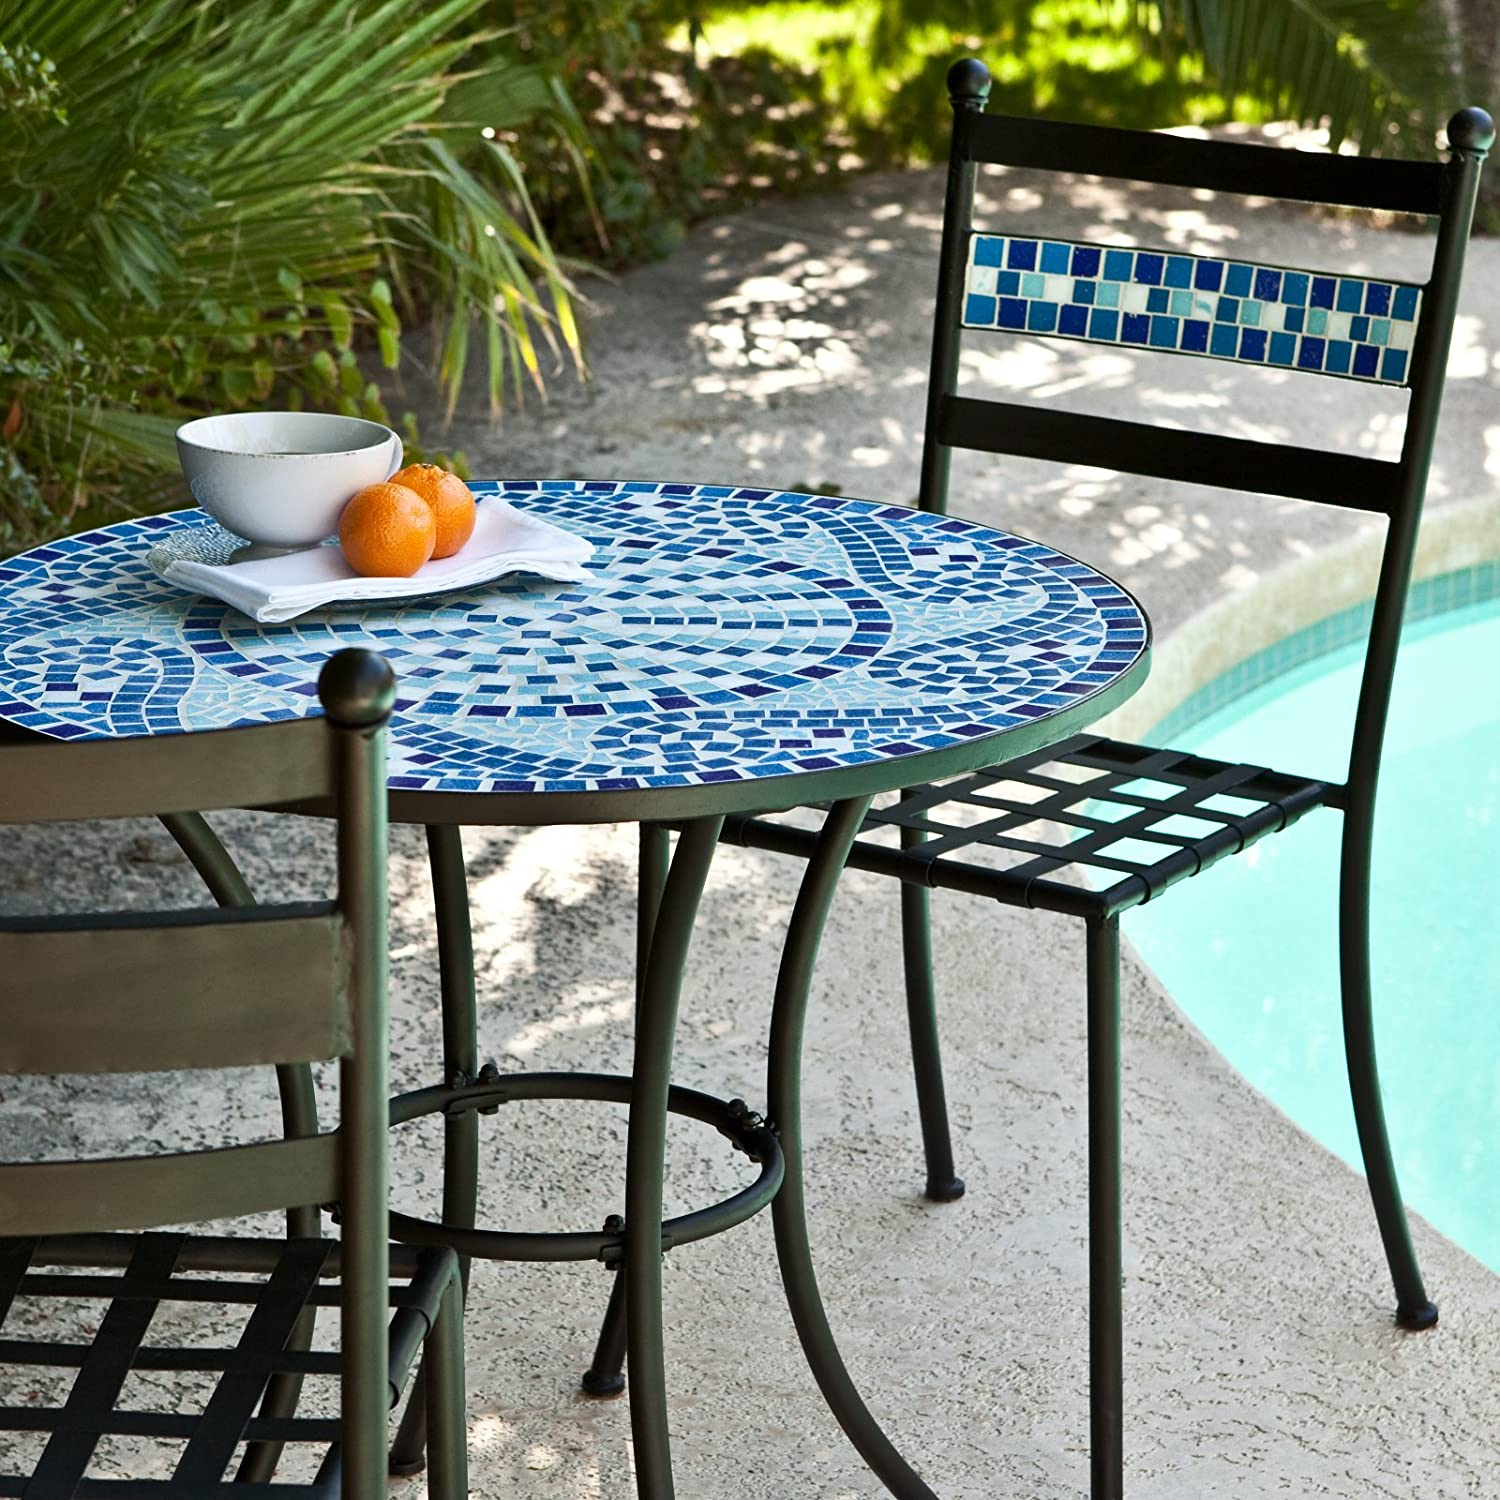 Elegant High top Patio Table and Chairs